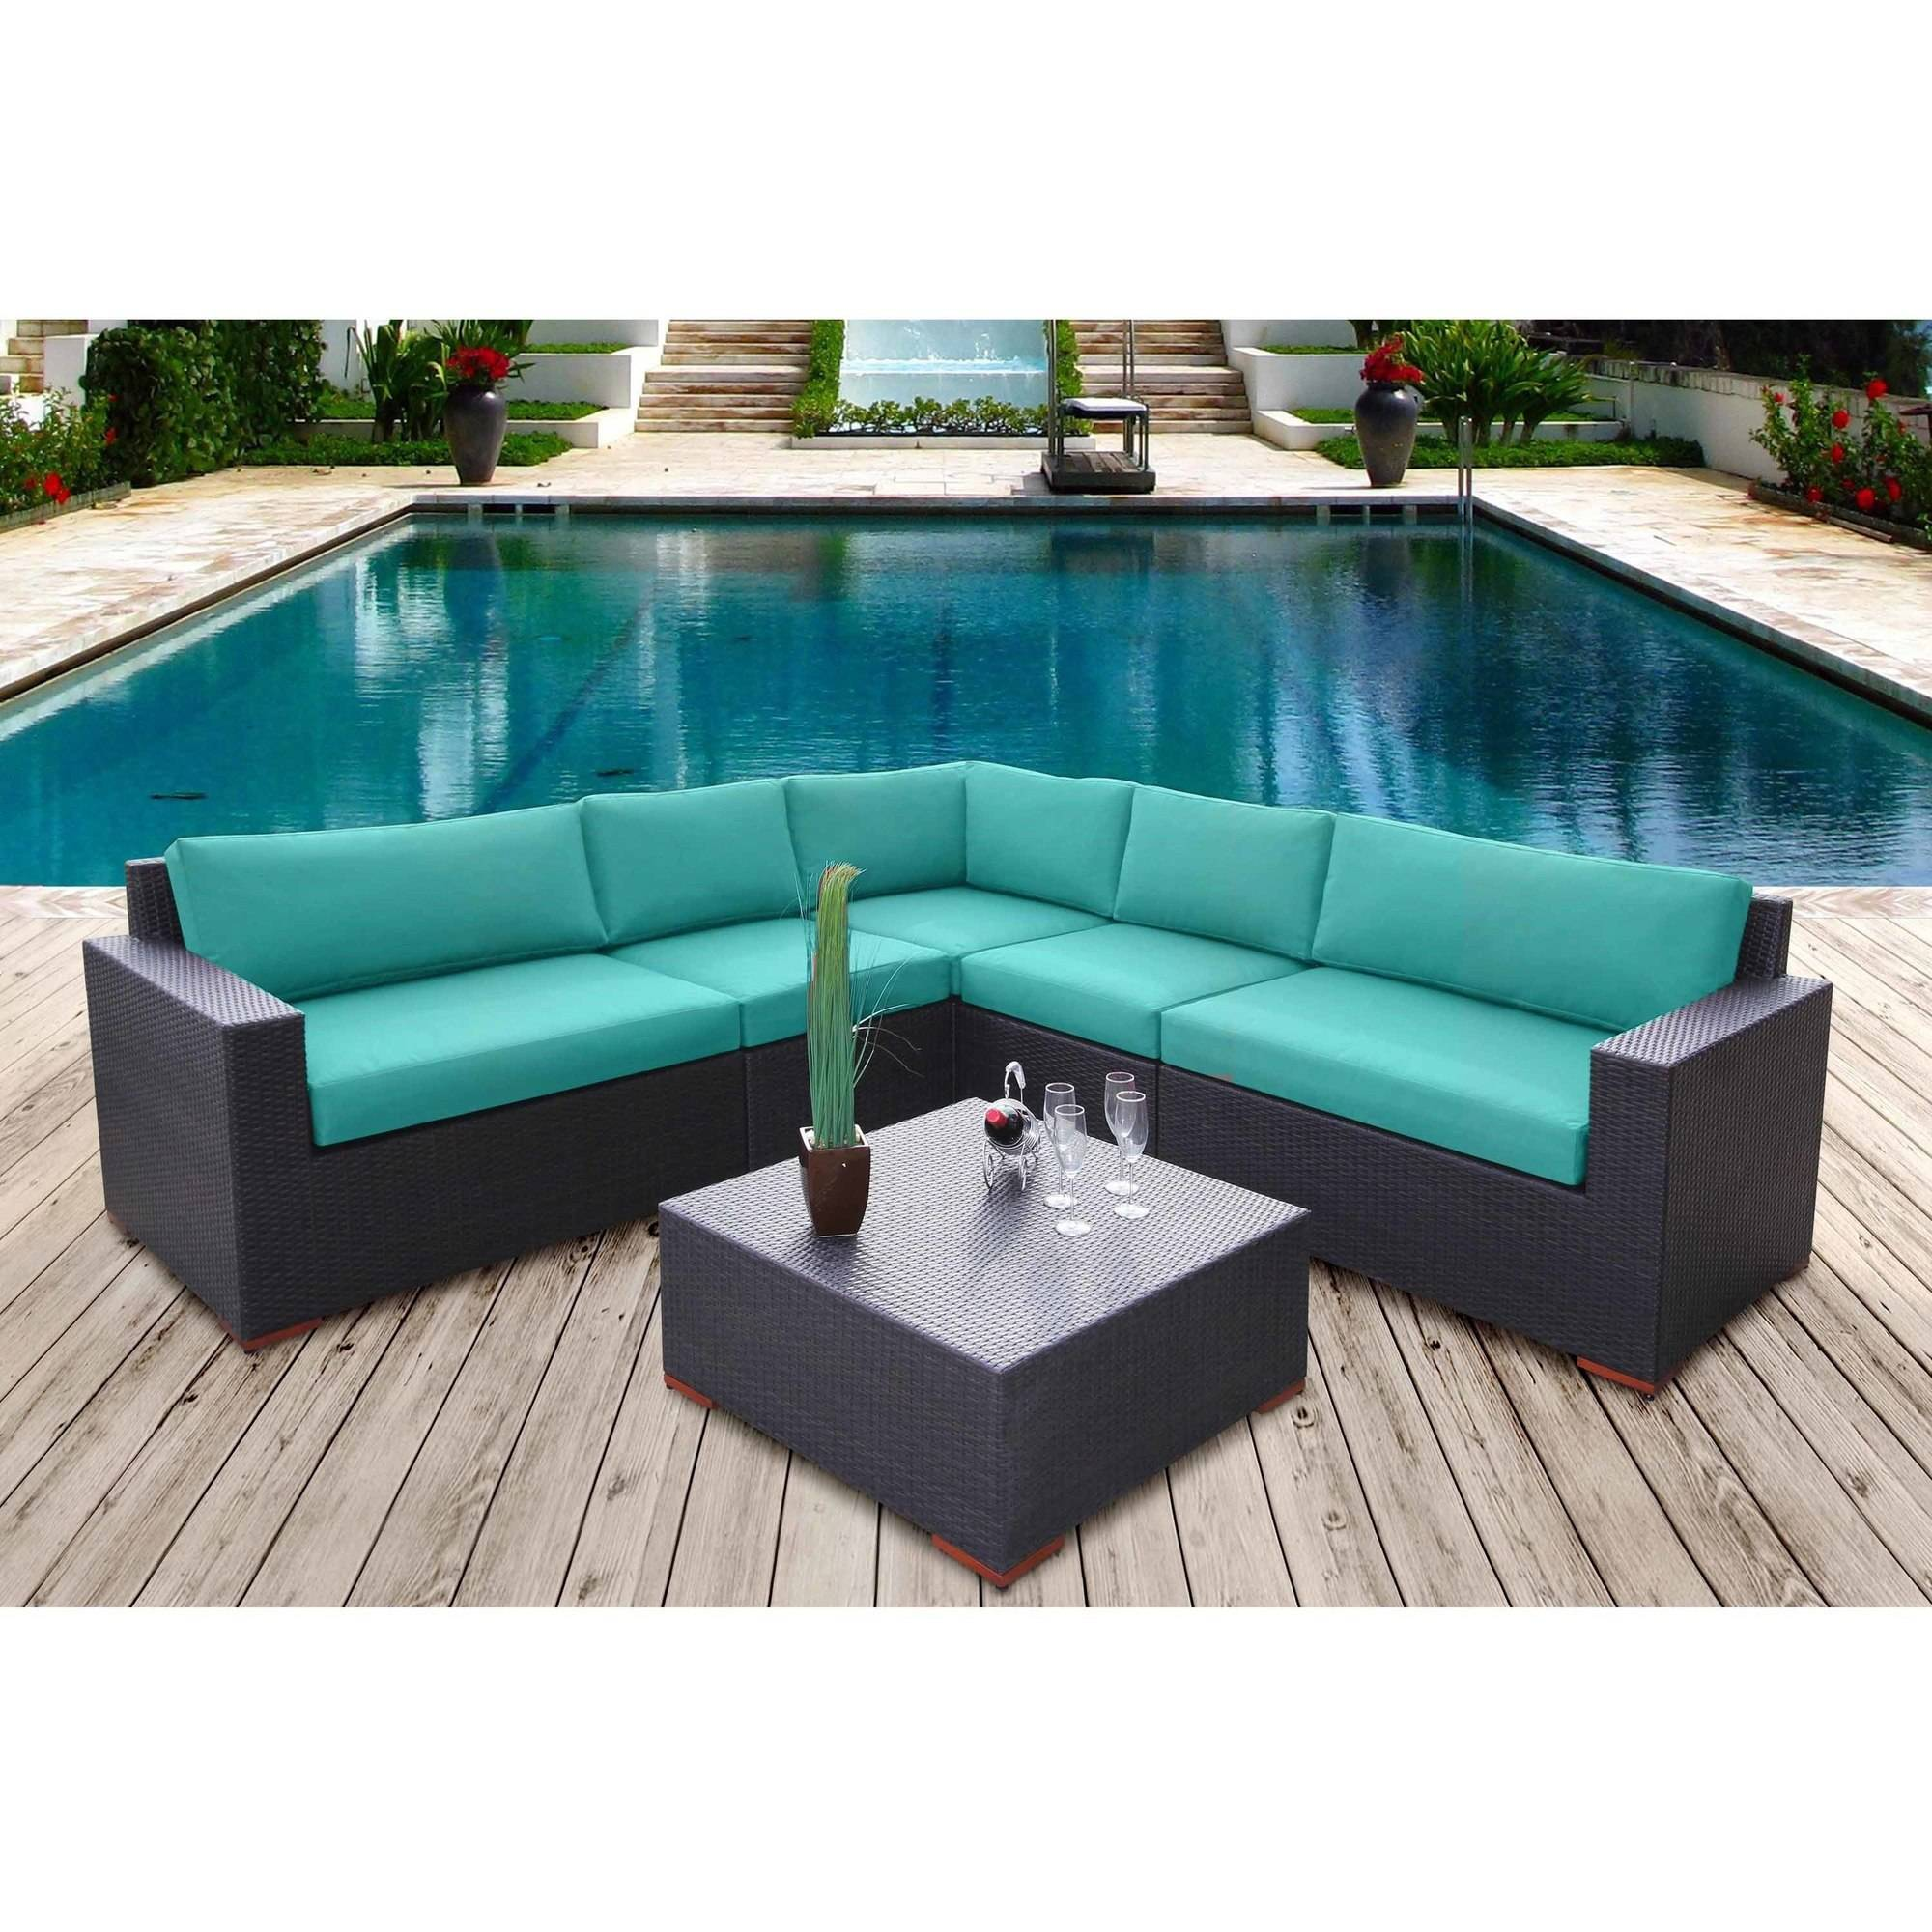 Nevis 6-Piece Sectional Seating Set